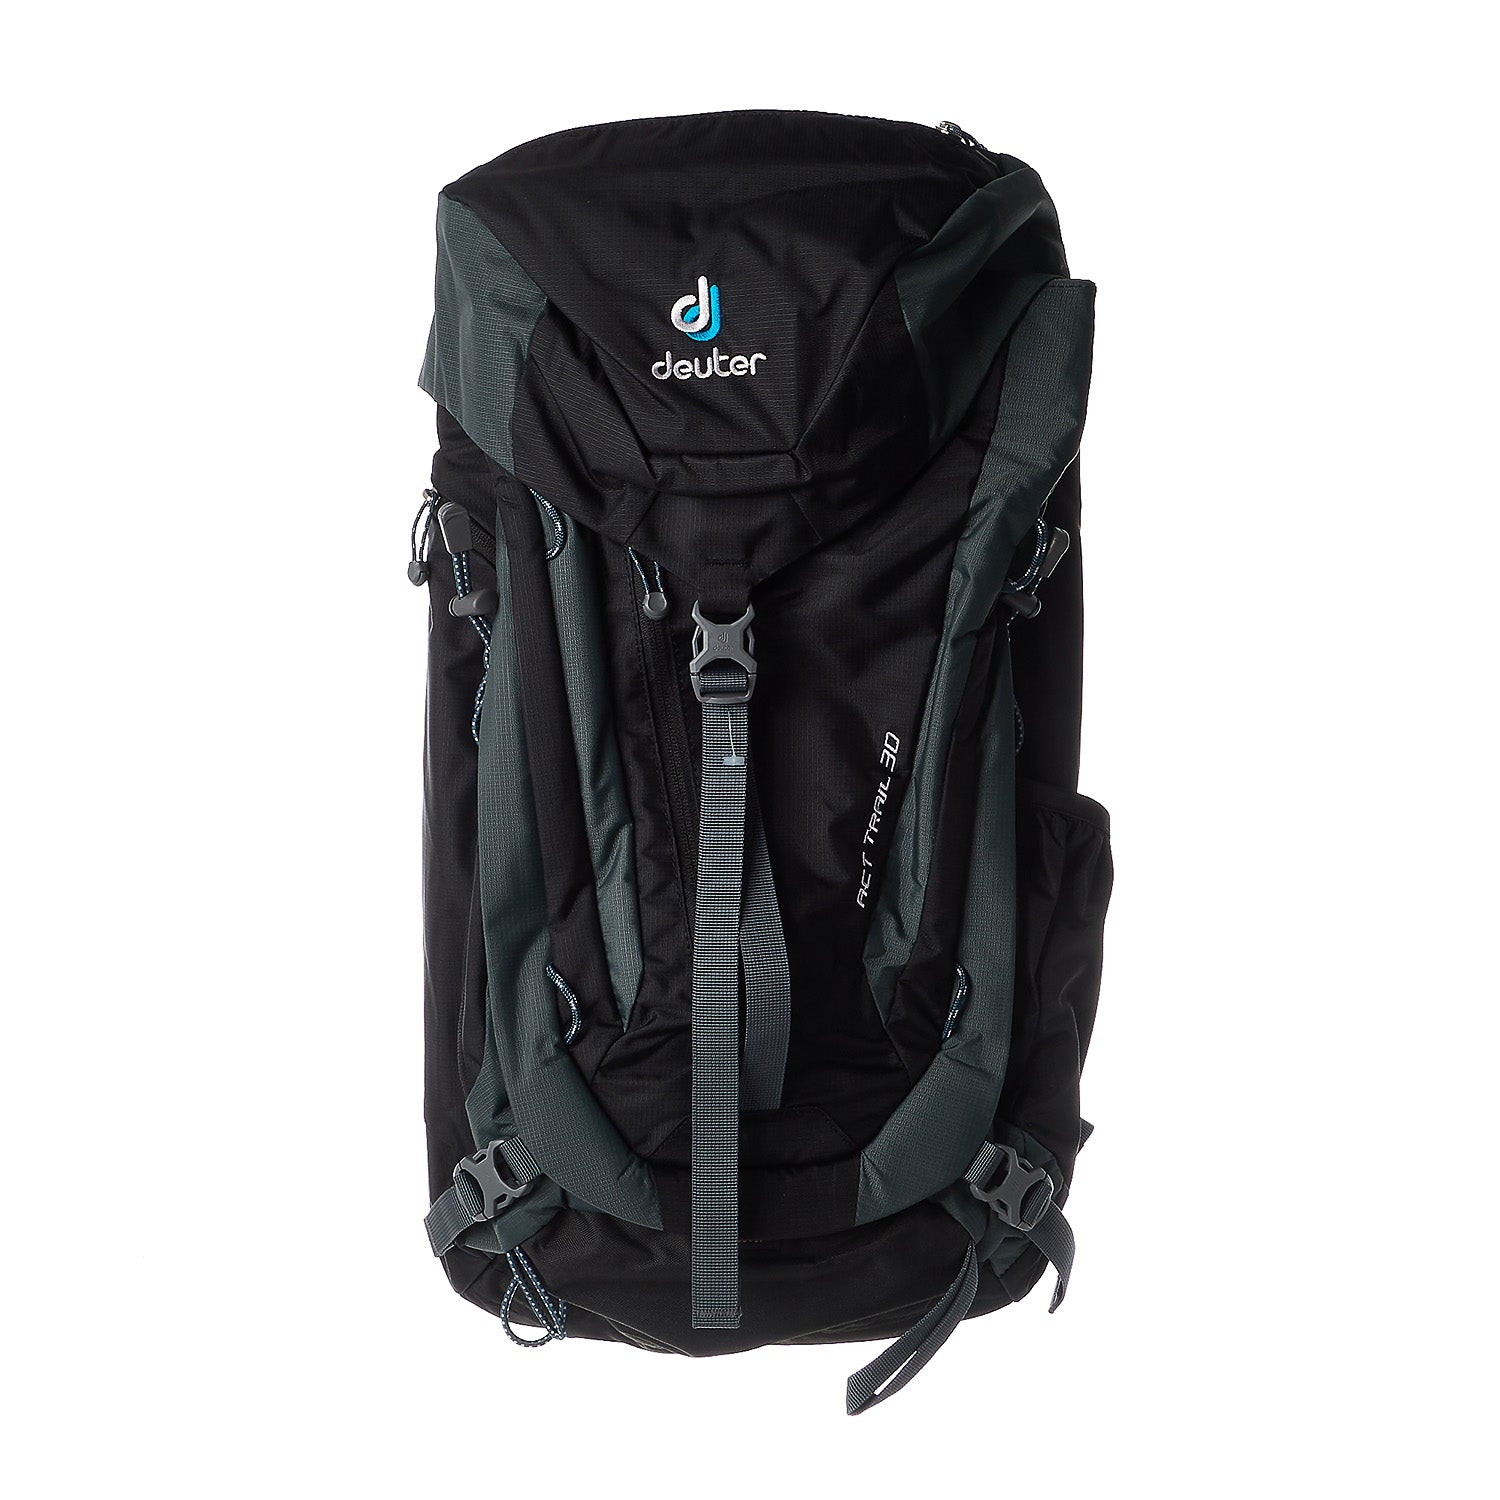 1ad2ce07967 Deuter ACT Trail 30 Hiking Backpack - Shoplifestyle